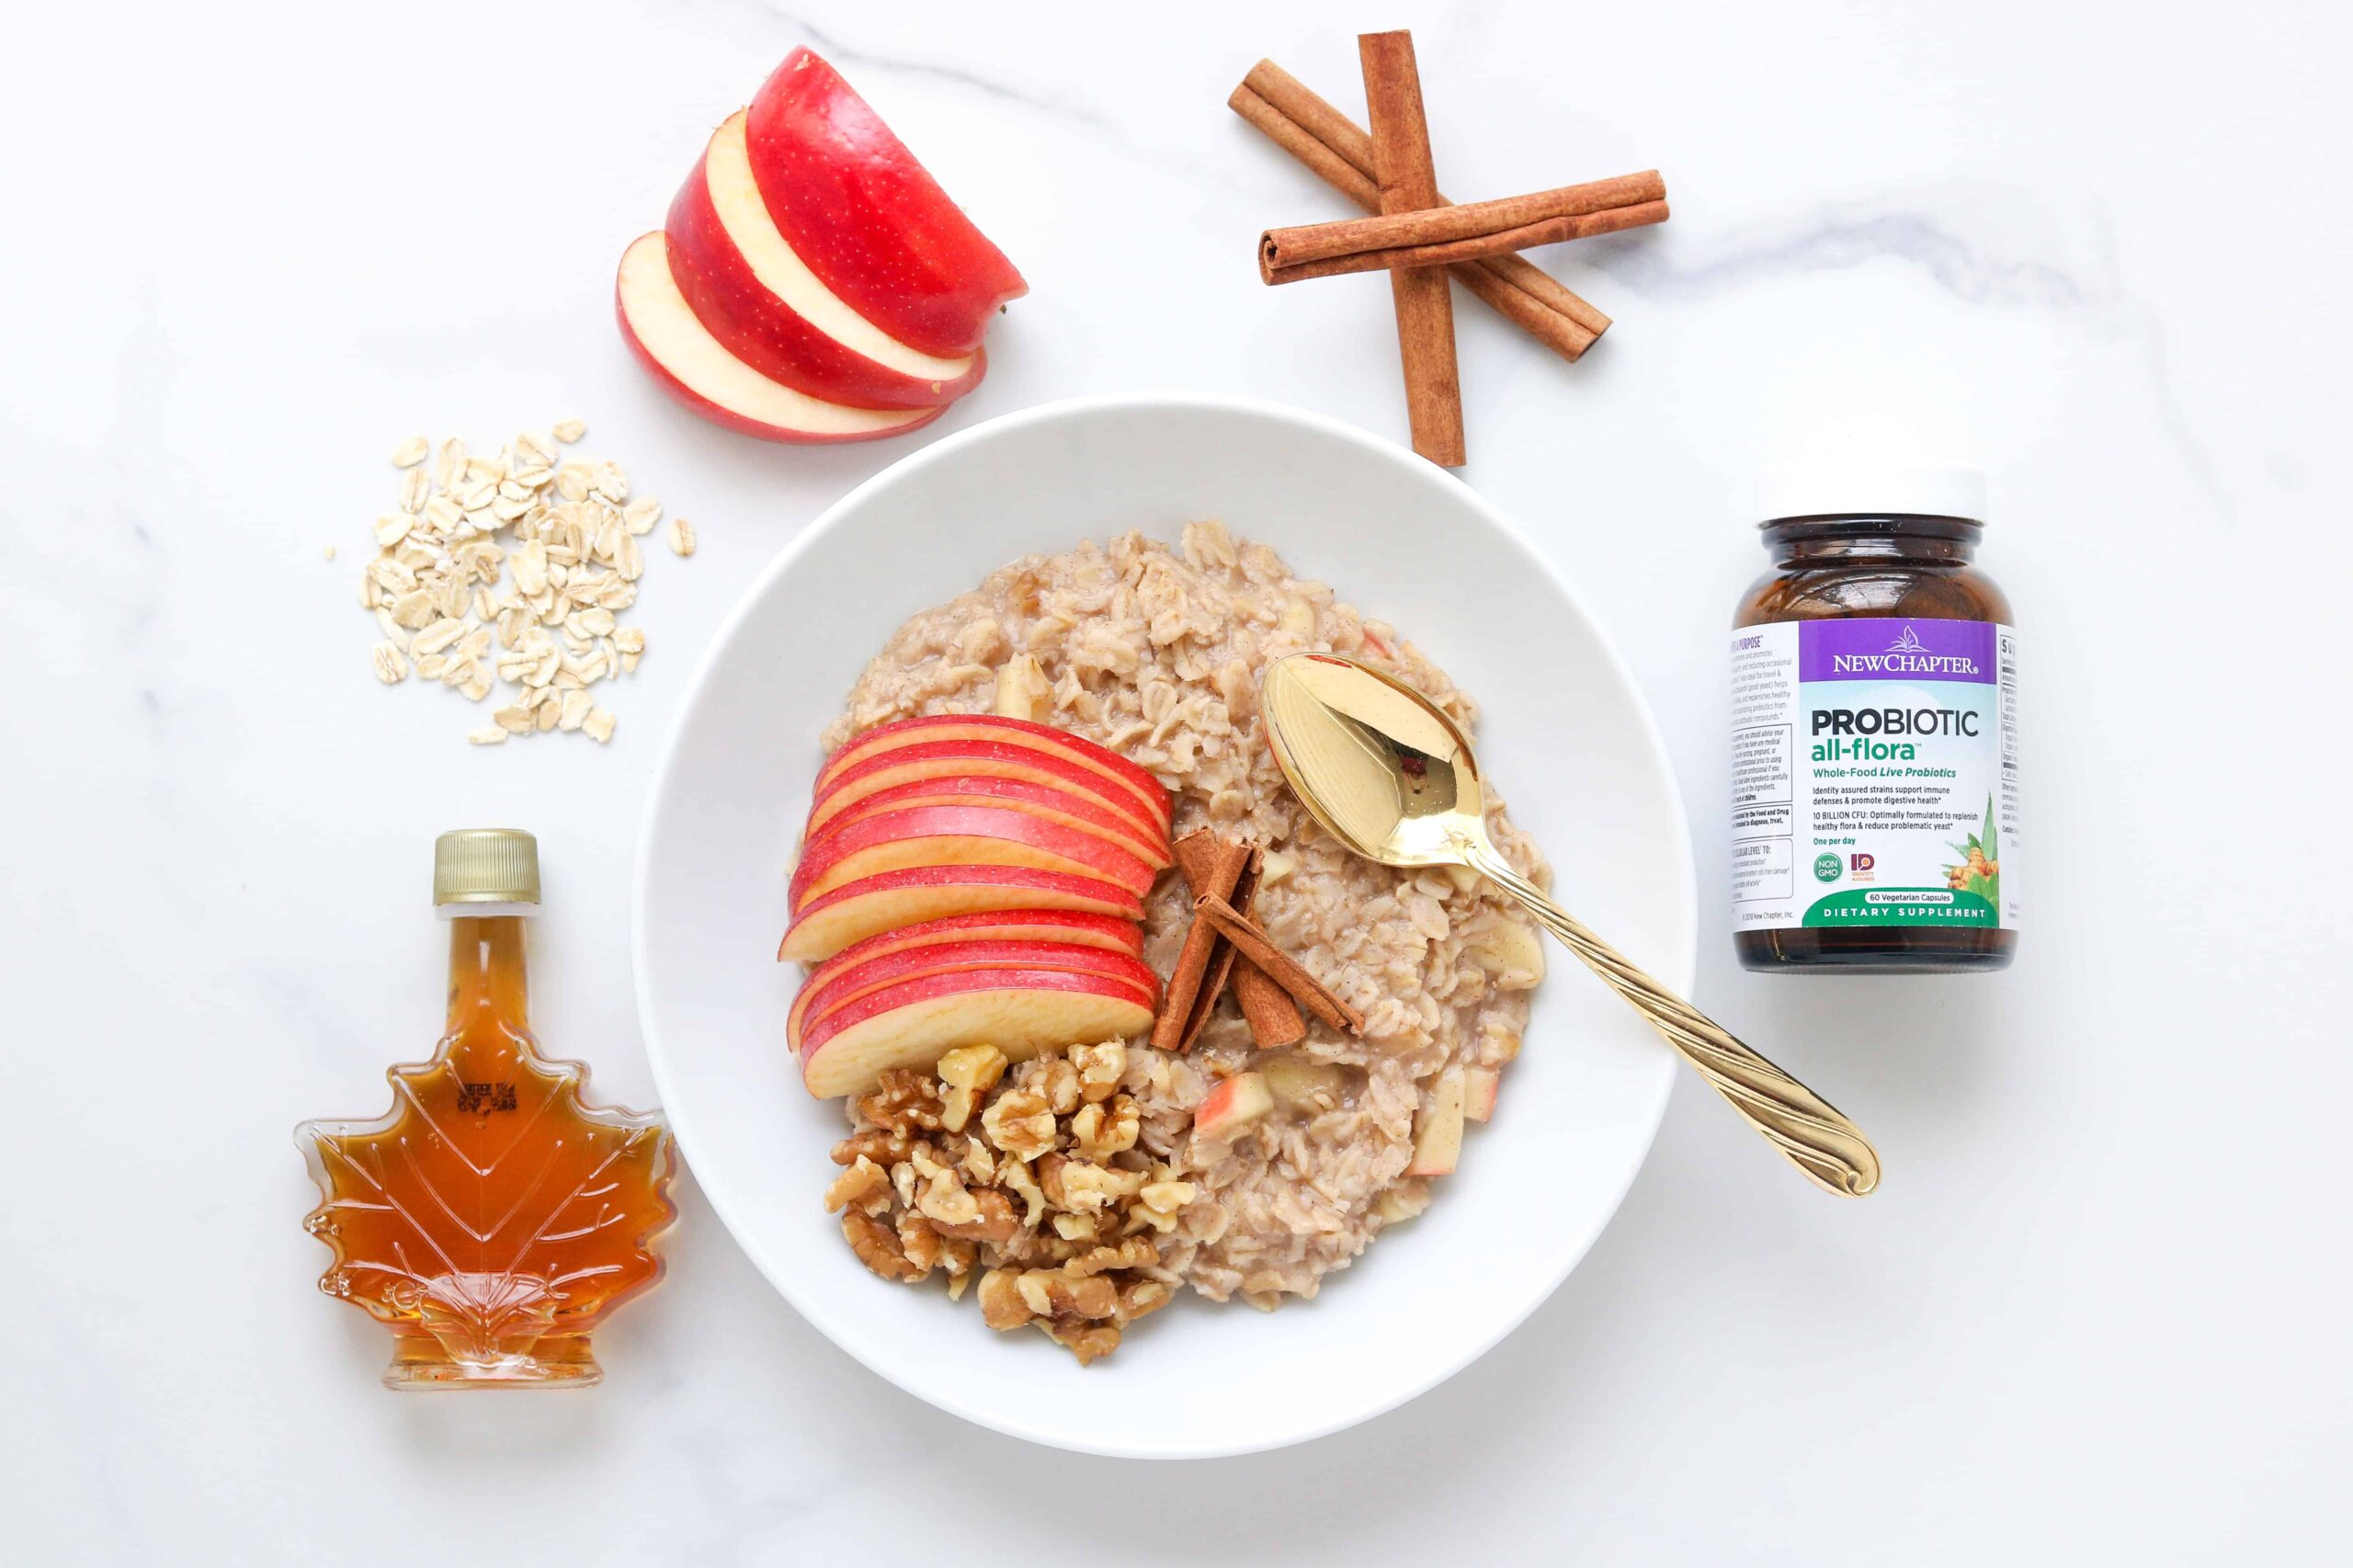 Apple Pie Oatmeal + The Benefits of Probiotics in Total Health @shawsimpleswaps #probiotics #prenbiotics #guthealth